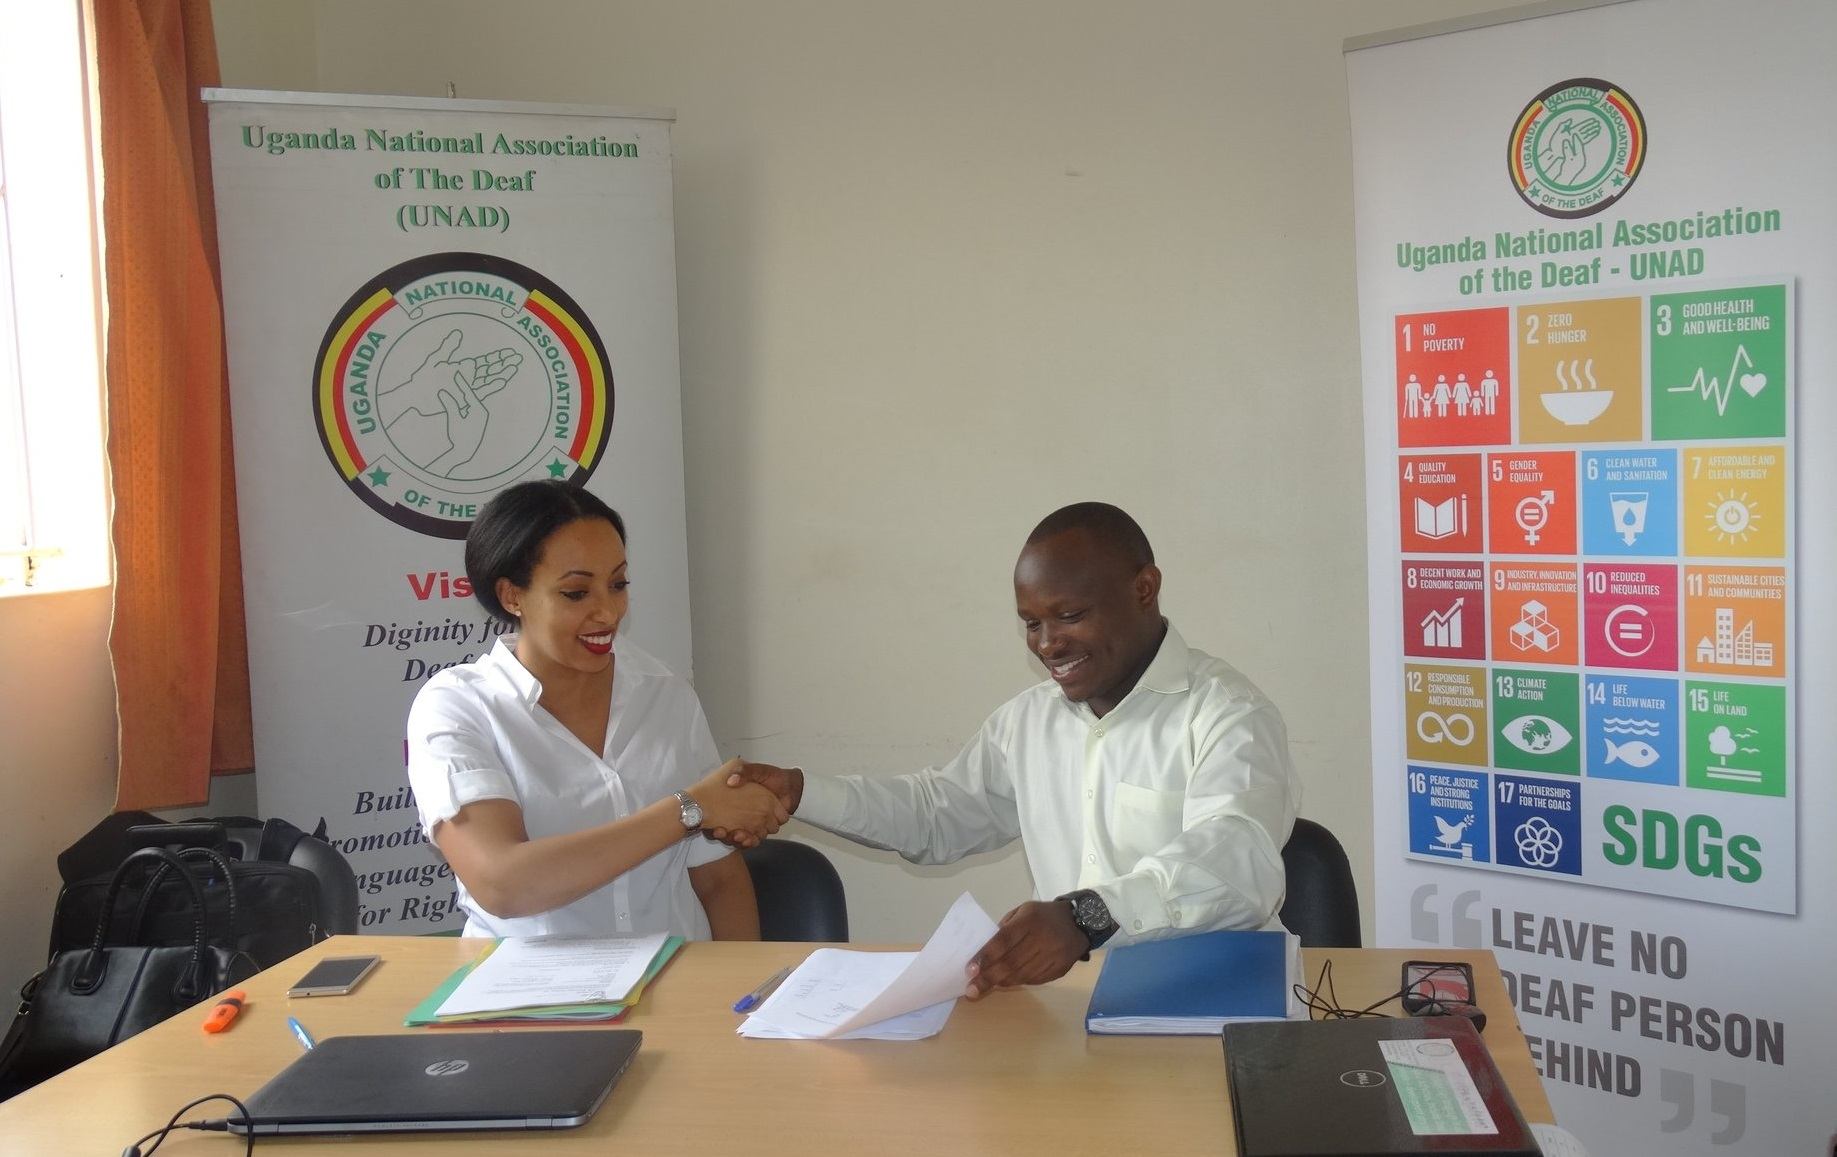 Spider programme manager, Magda Berhe Johnson and UNAD's Ambrose Murangira signing the project agreement